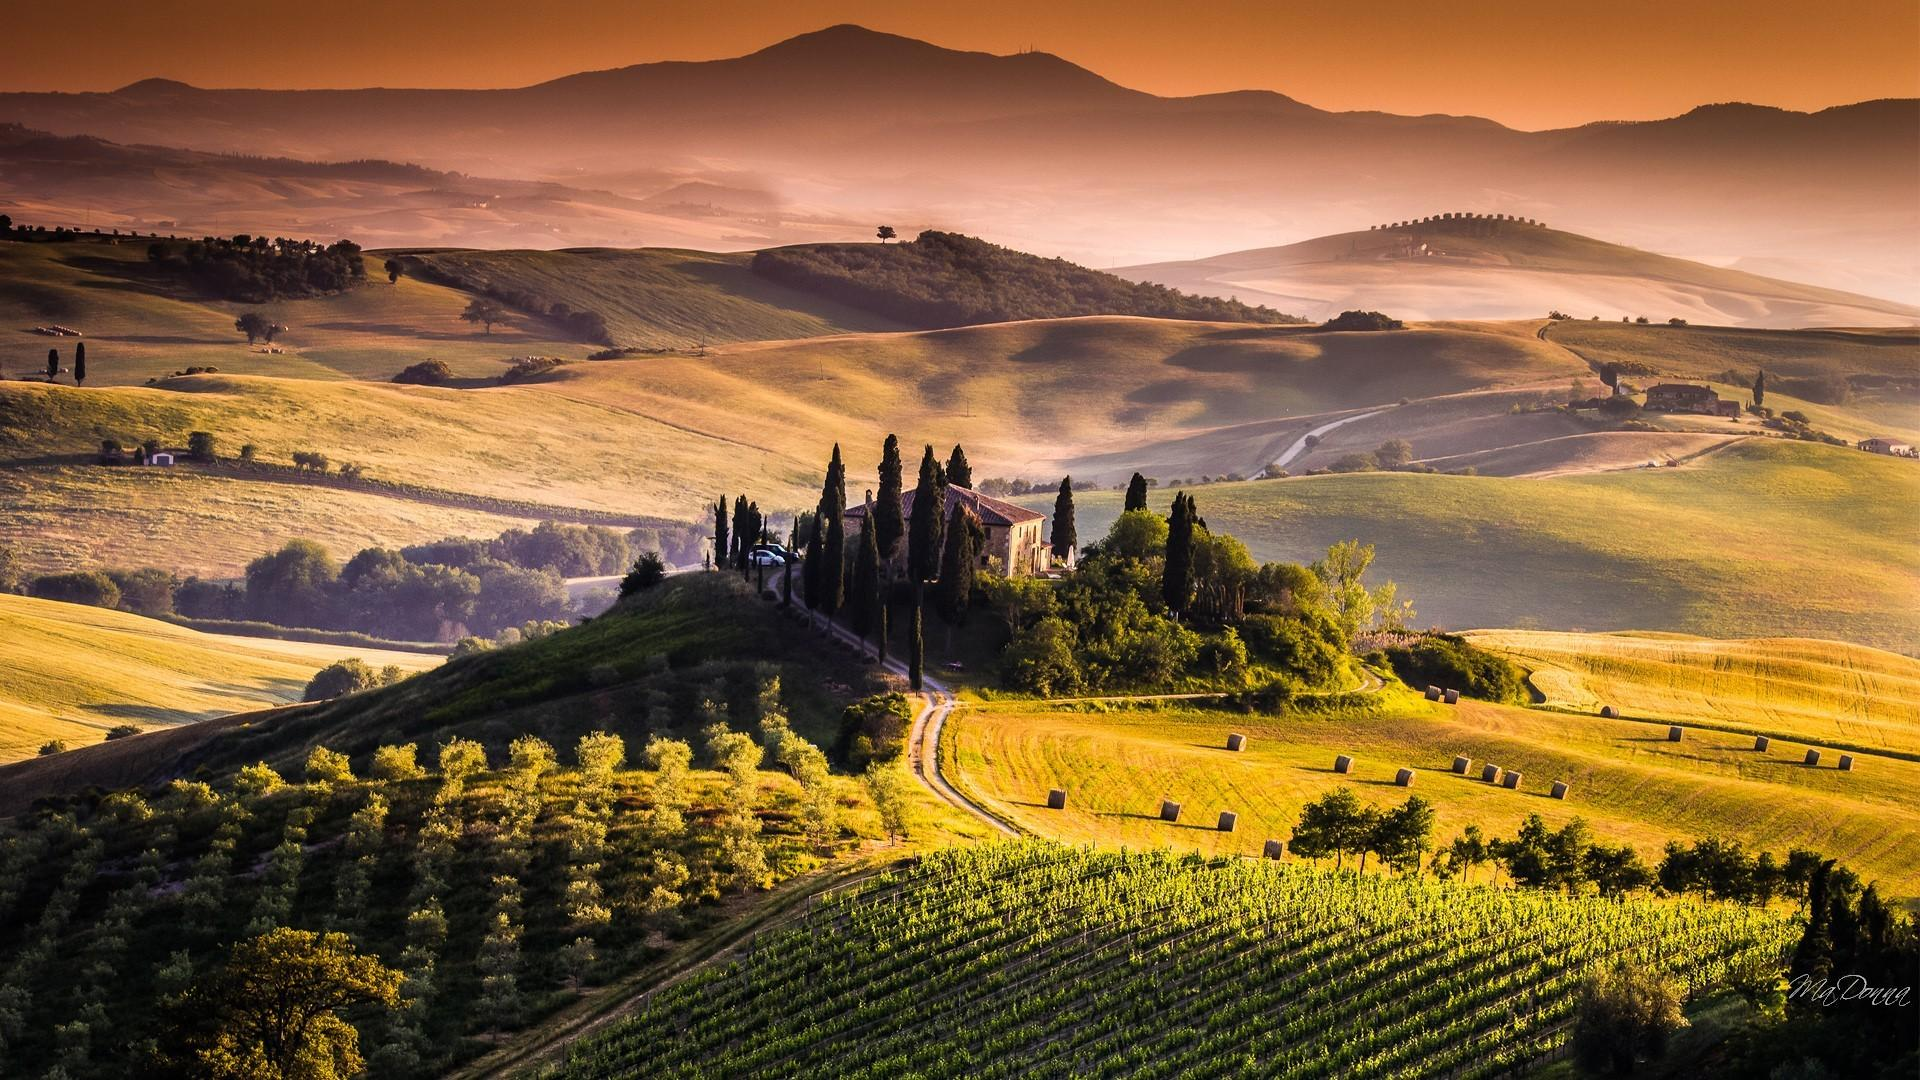 tuscany-wine-wallpaper-4 large for Tuscan wine | All Inclusive ...